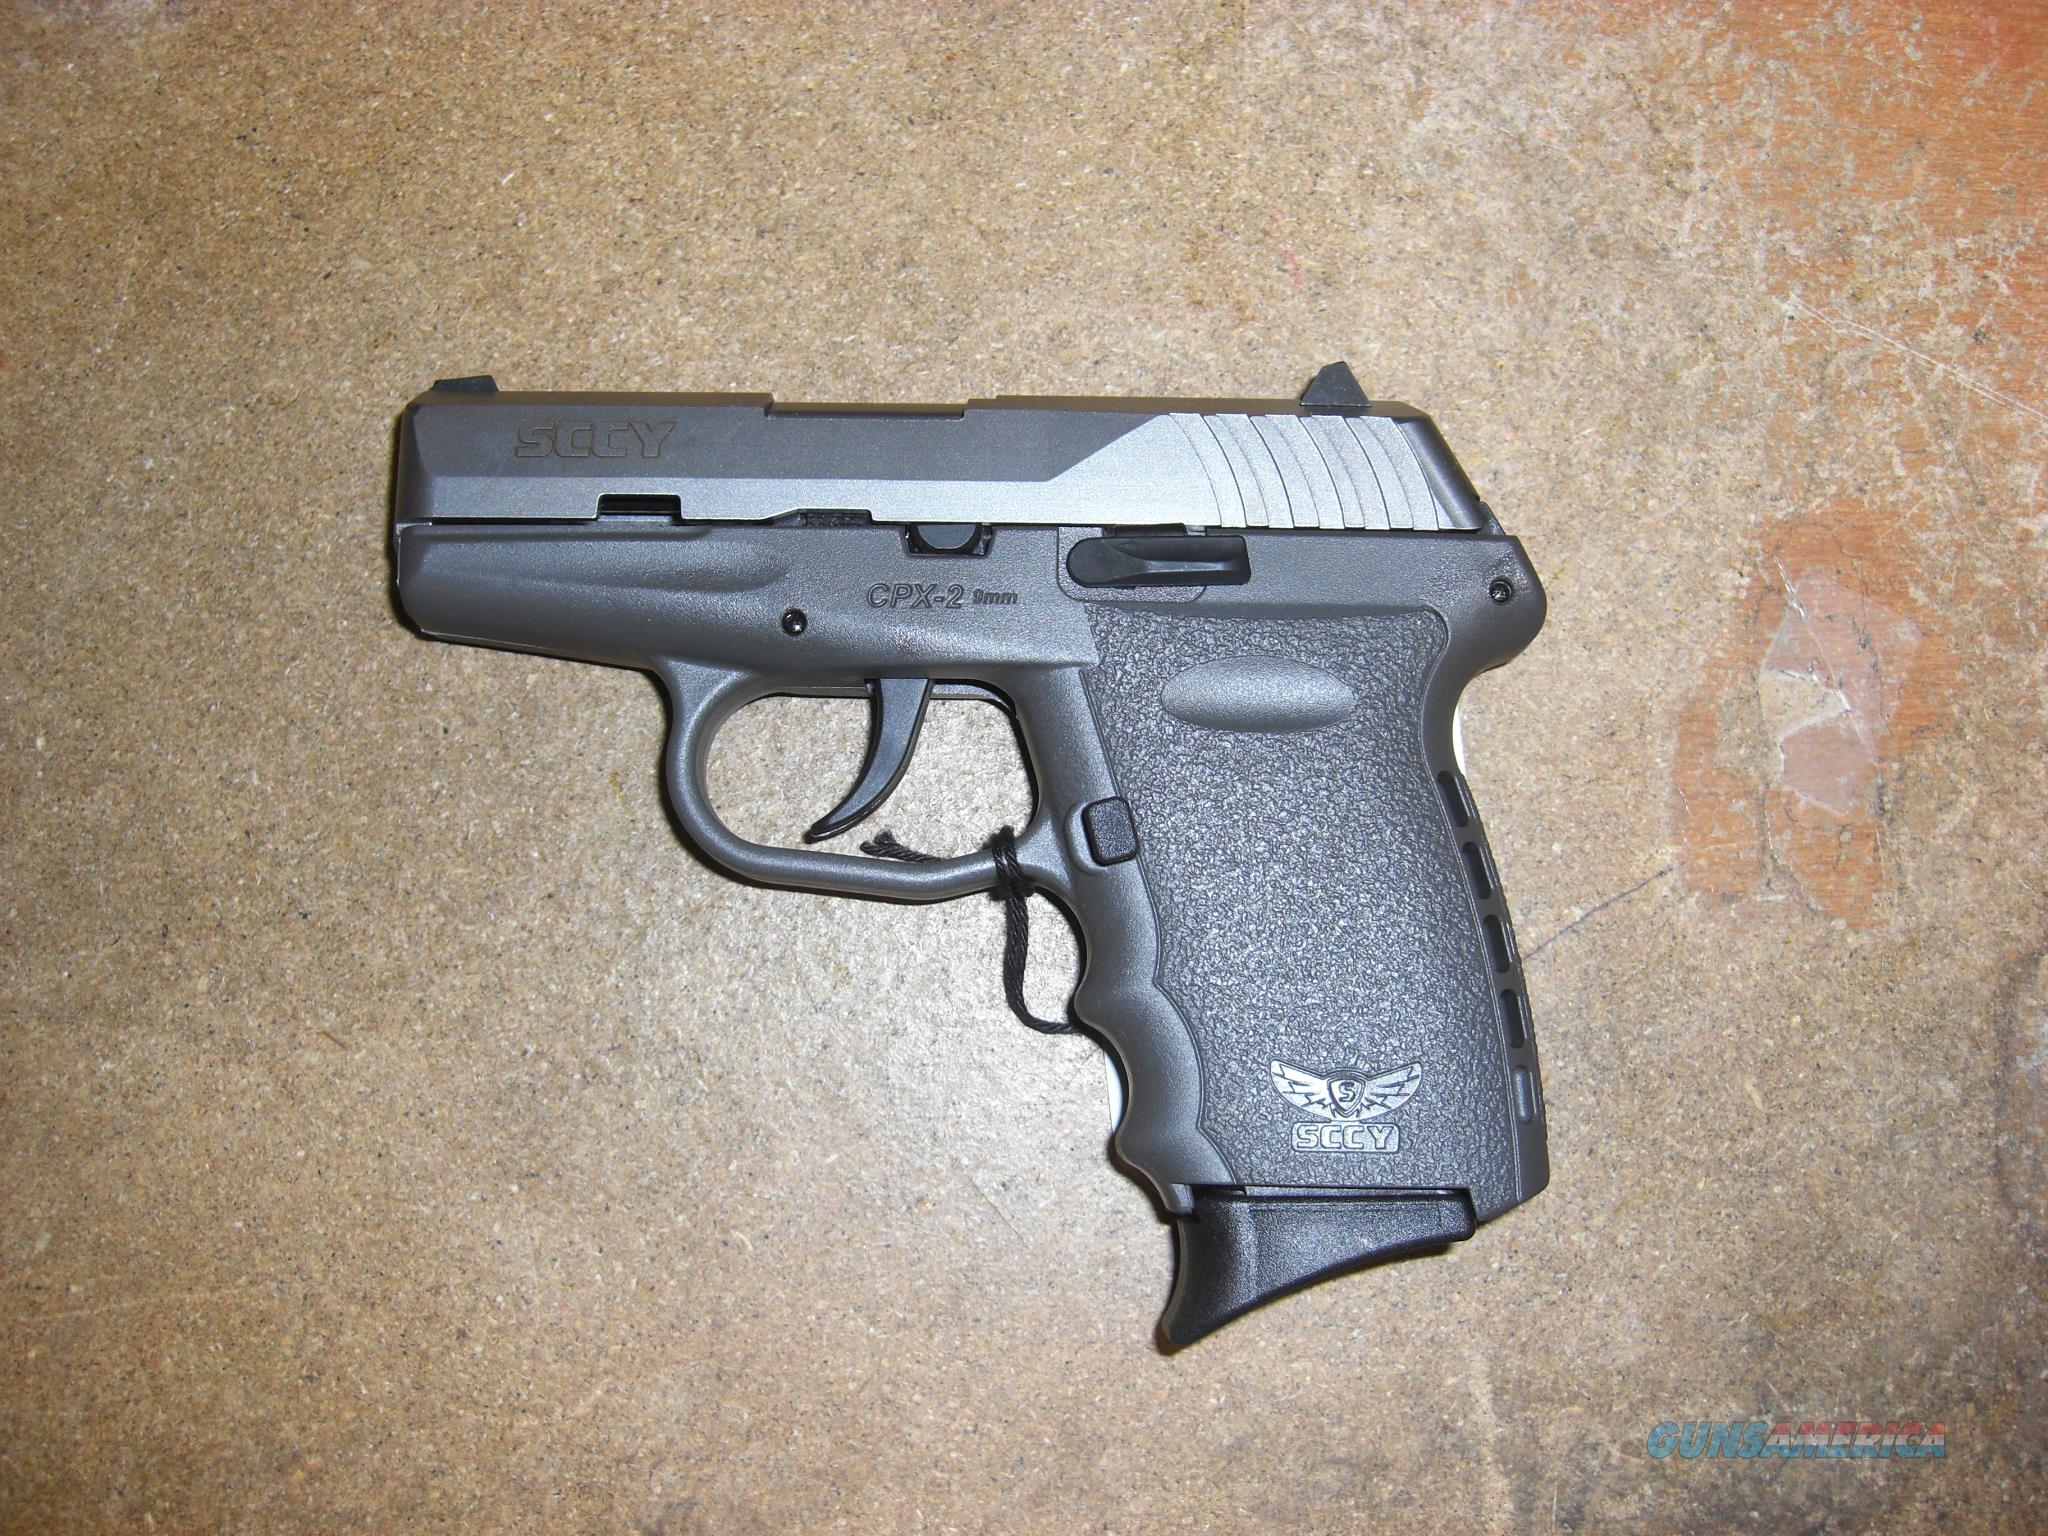 SCCY CPX-2  w/2 tone stainless finish (no safety)  Guns > Pistols > S Misc Pistols